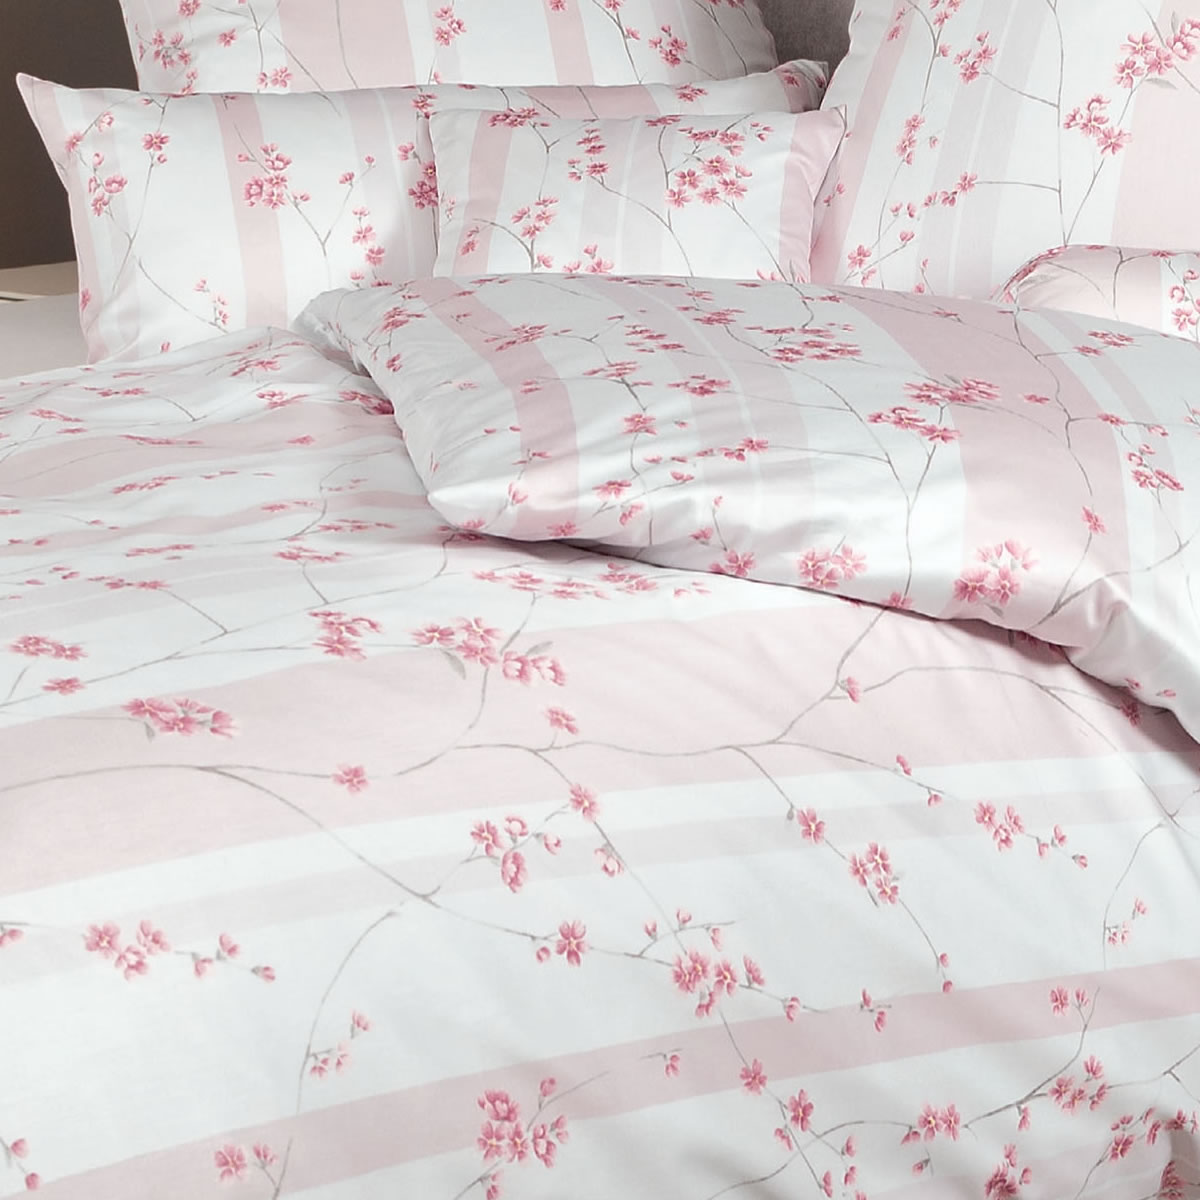 janine interlock fein jersey bettw sche carmen 53043 01 ros rosa wei blumen ebay. Black Bedroom Furniture Sets. Home Design Ideas